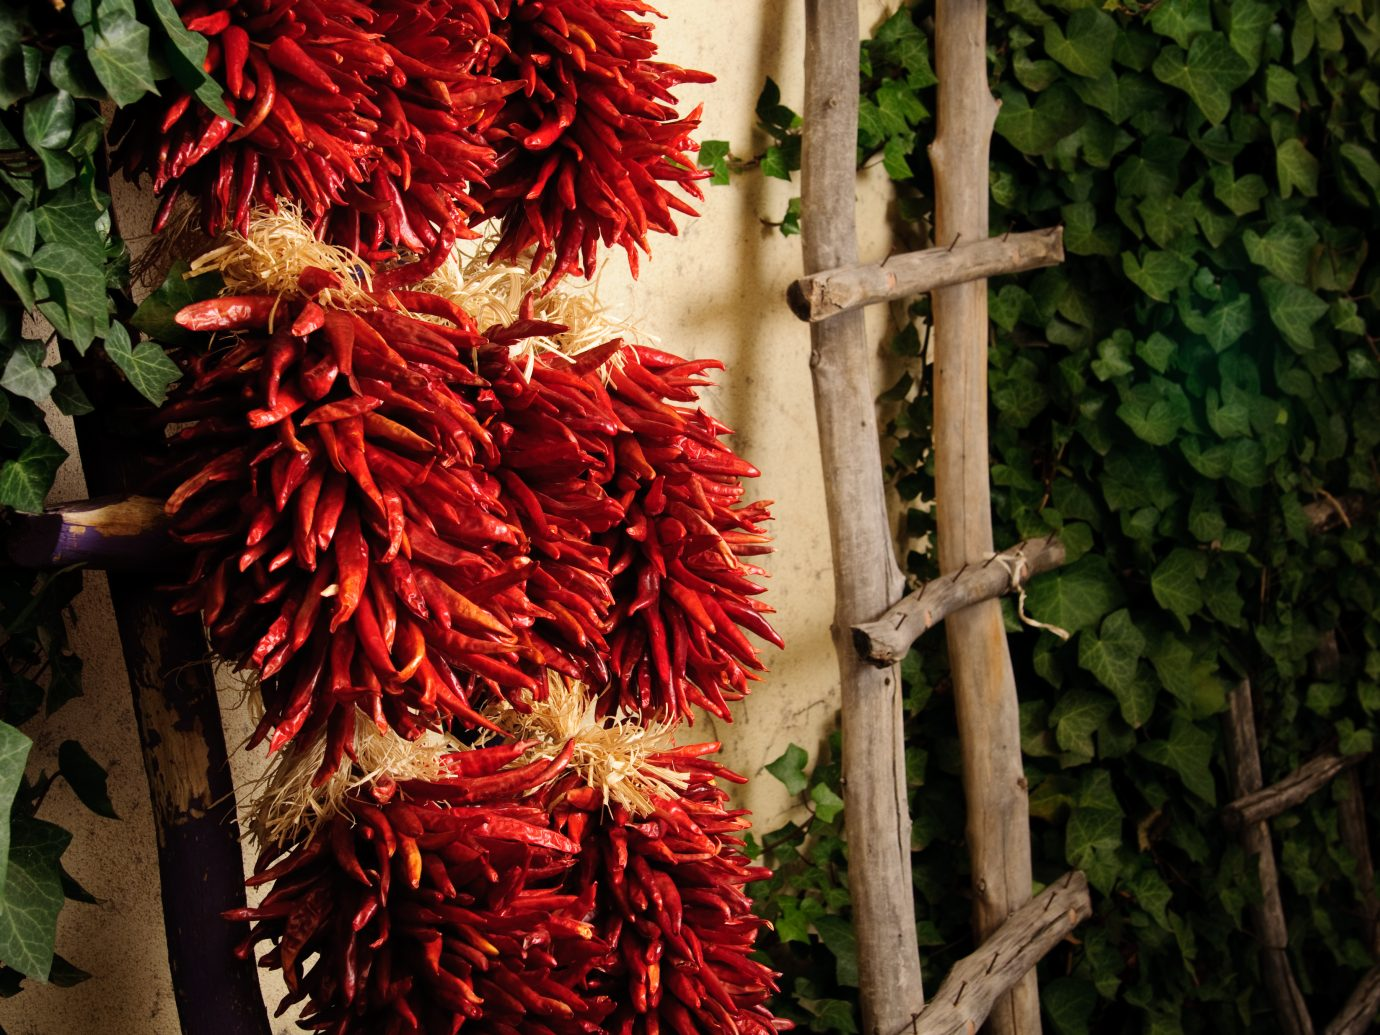 Red Chile ristra in a courtyard in Old Town in Albuquerque, New Mexico.